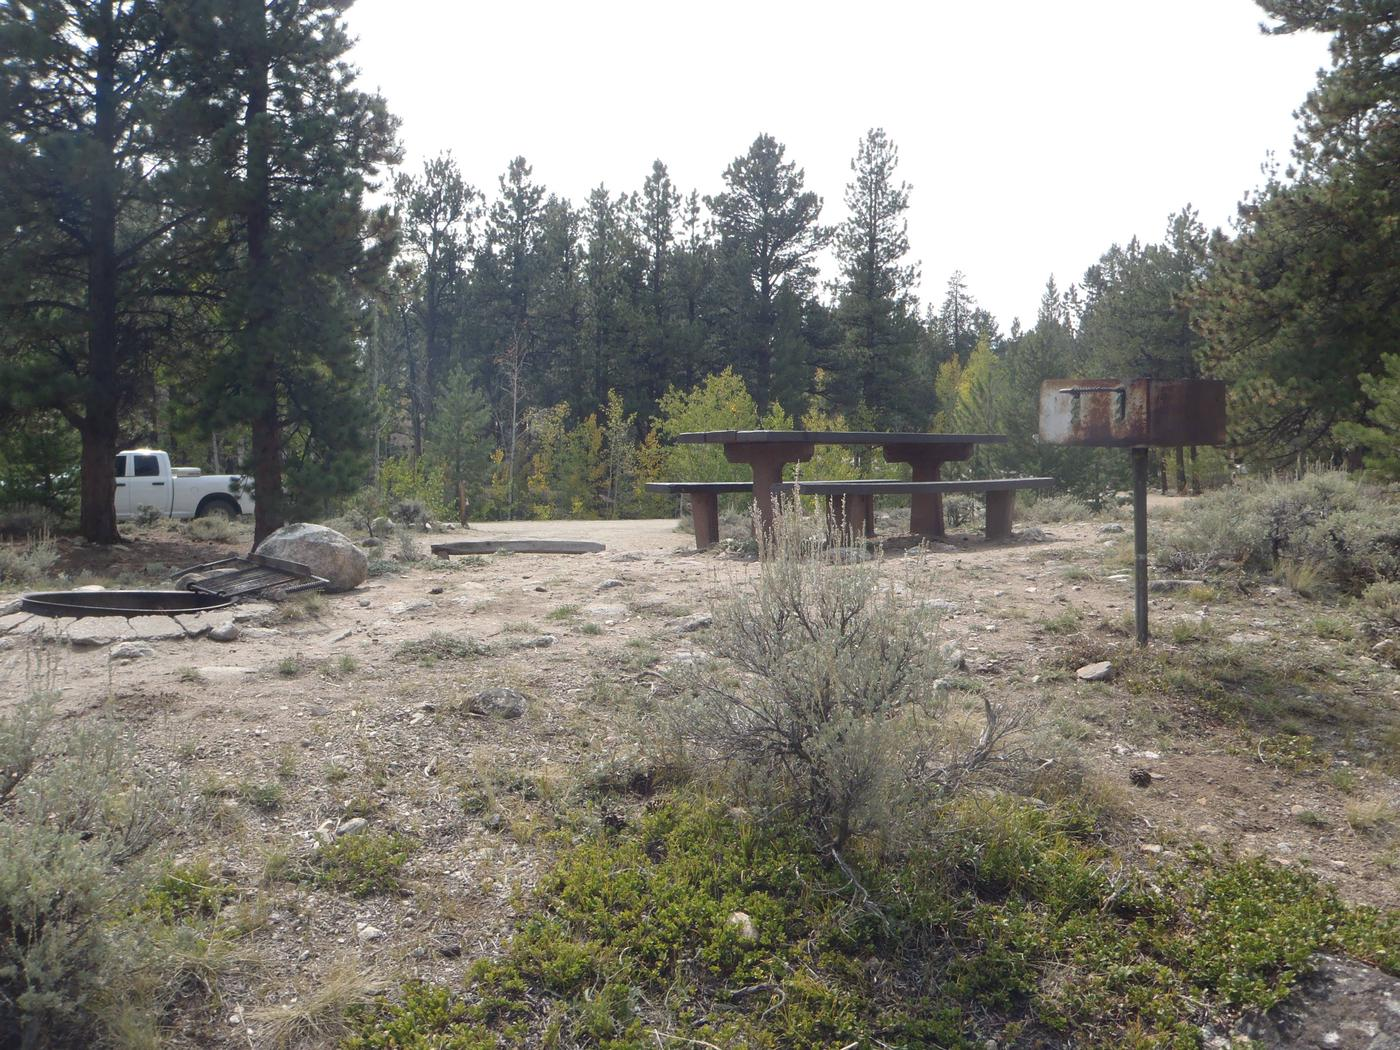 White Star Campground, site 47 picnic table